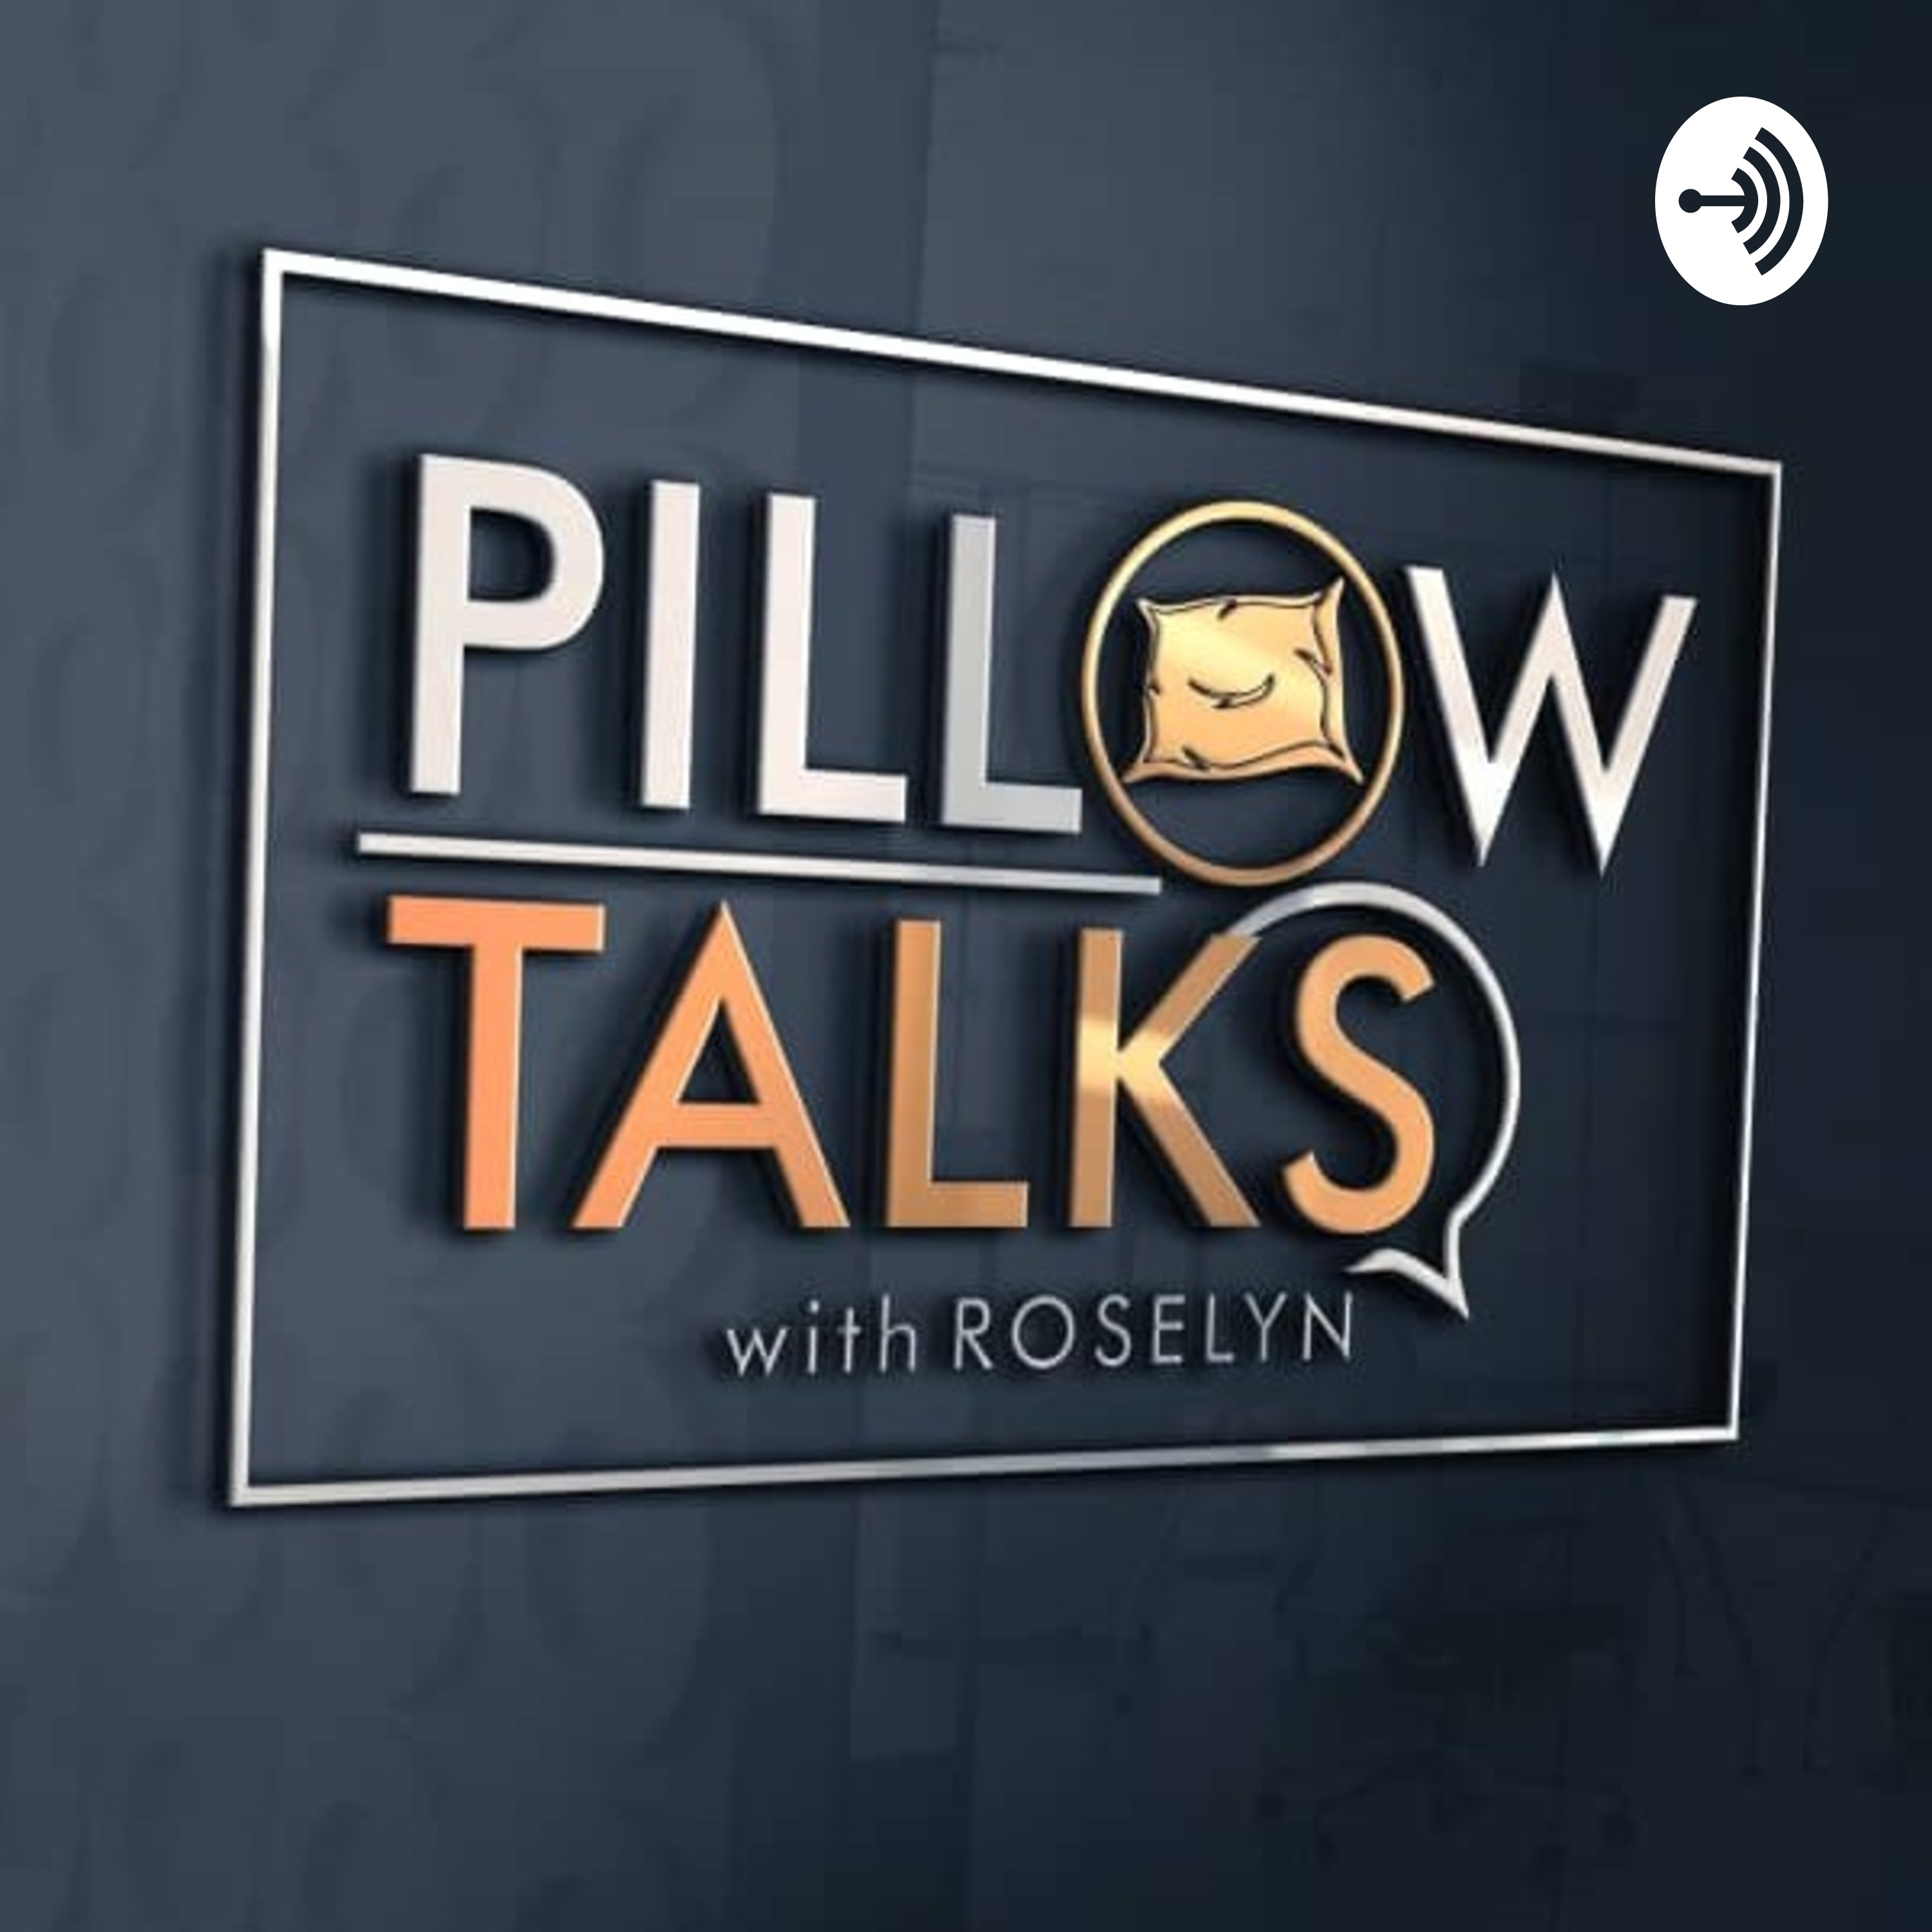 Pillow Talks Podcast podcast